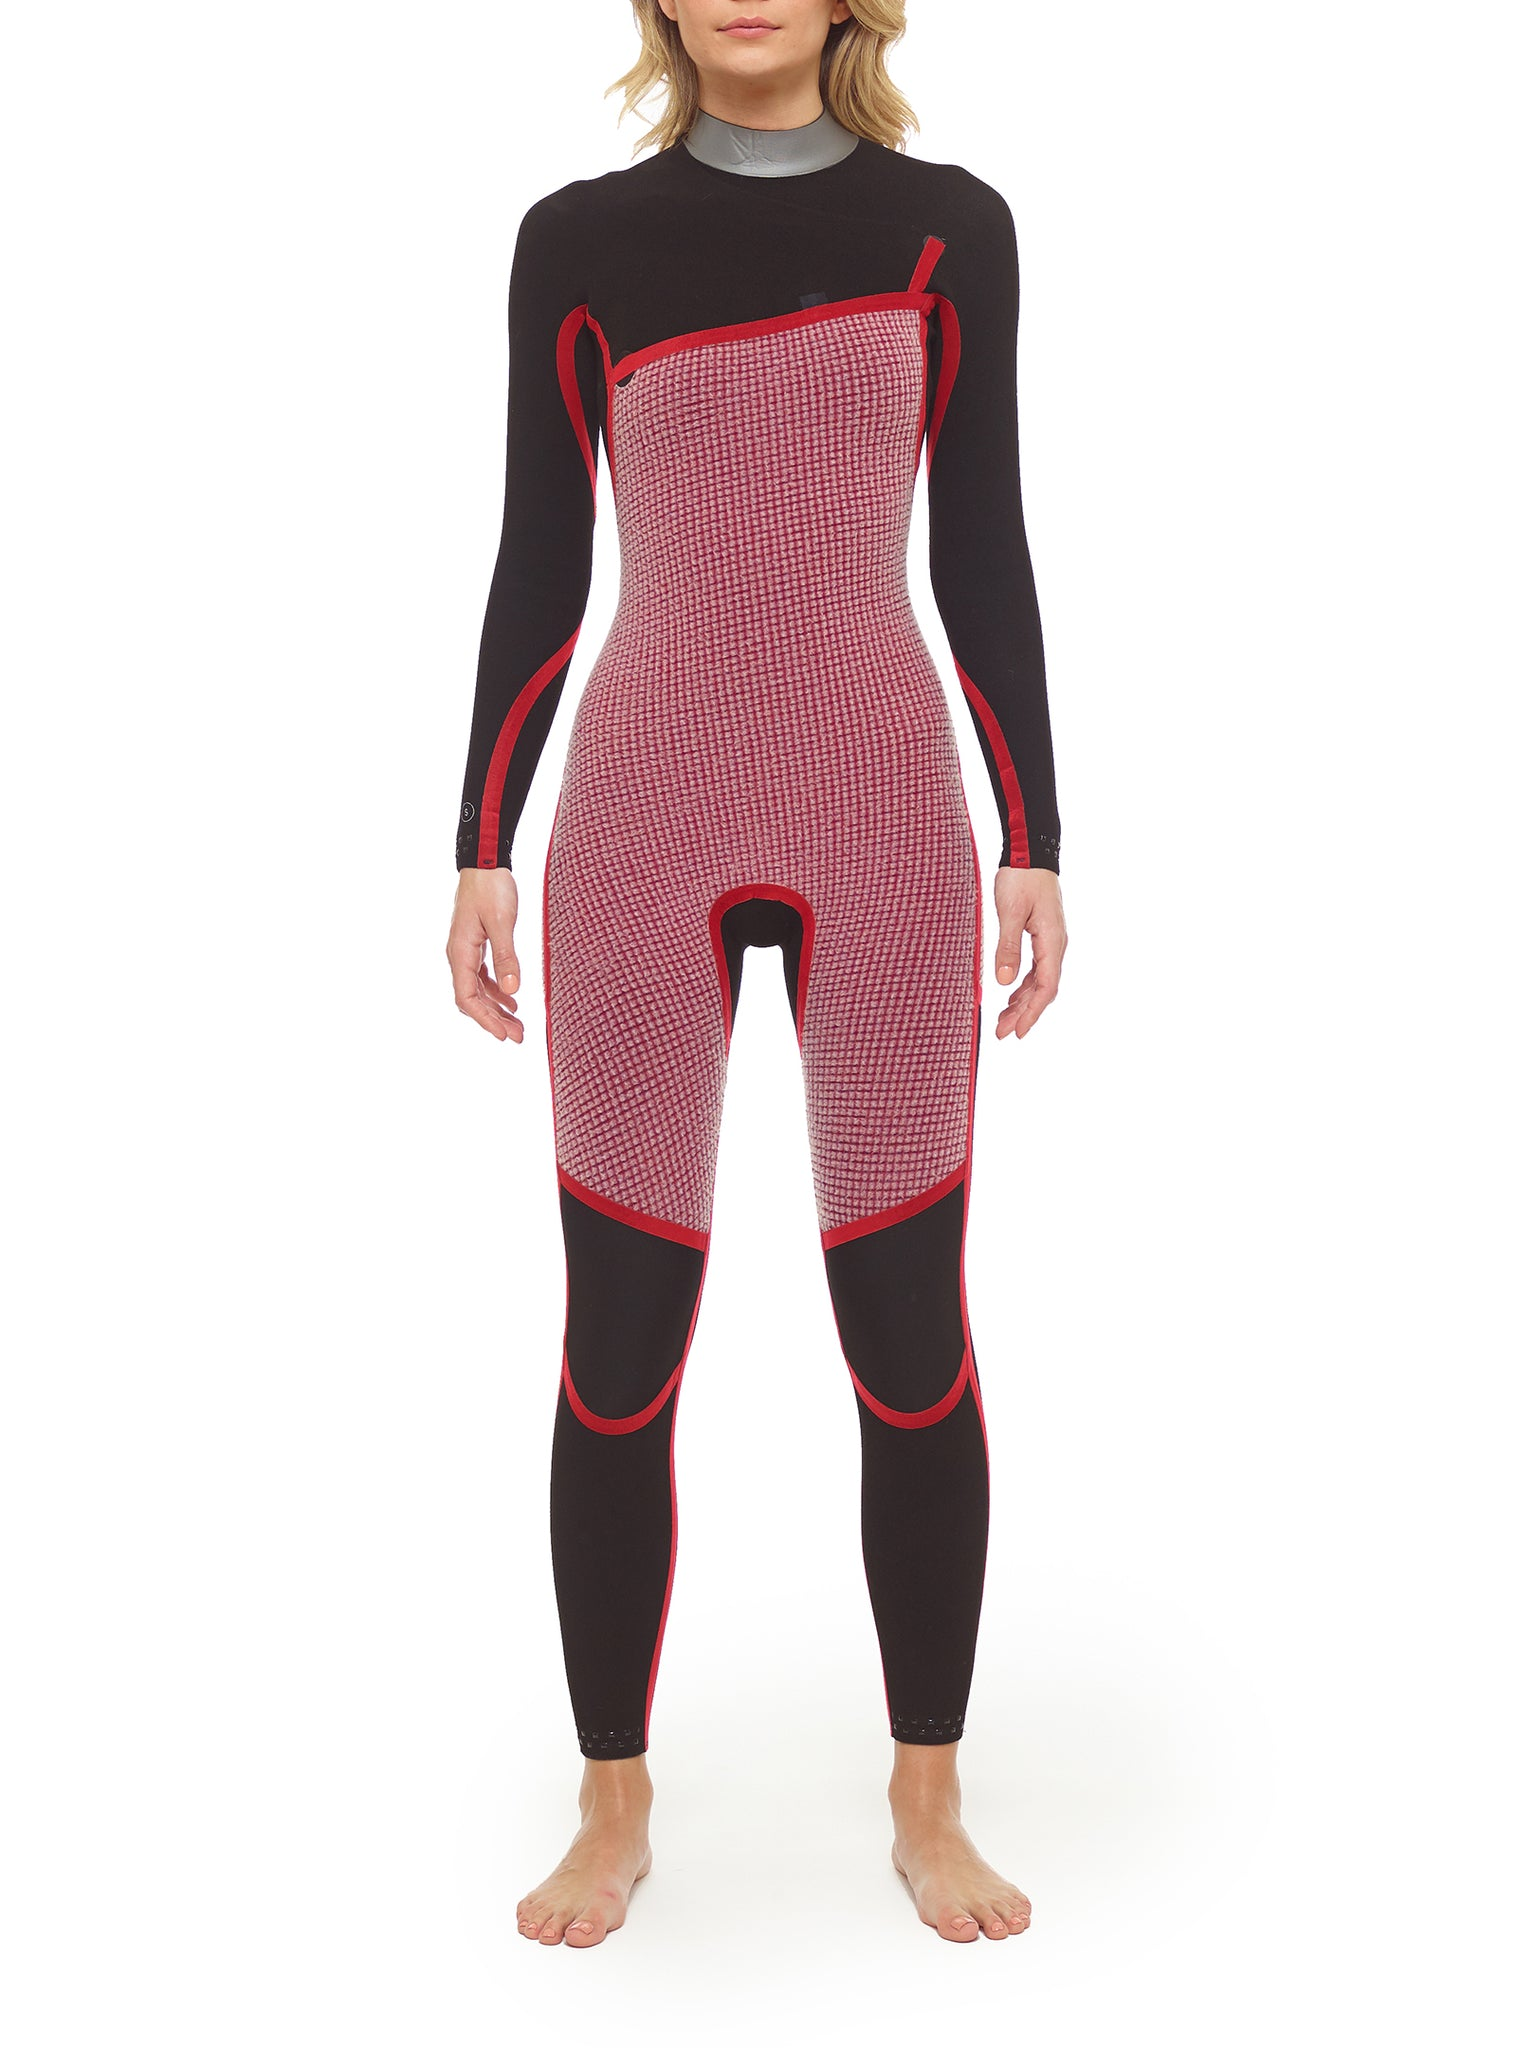 Wetsuit Woman Competition Yulex 4/3 Zipperless Black